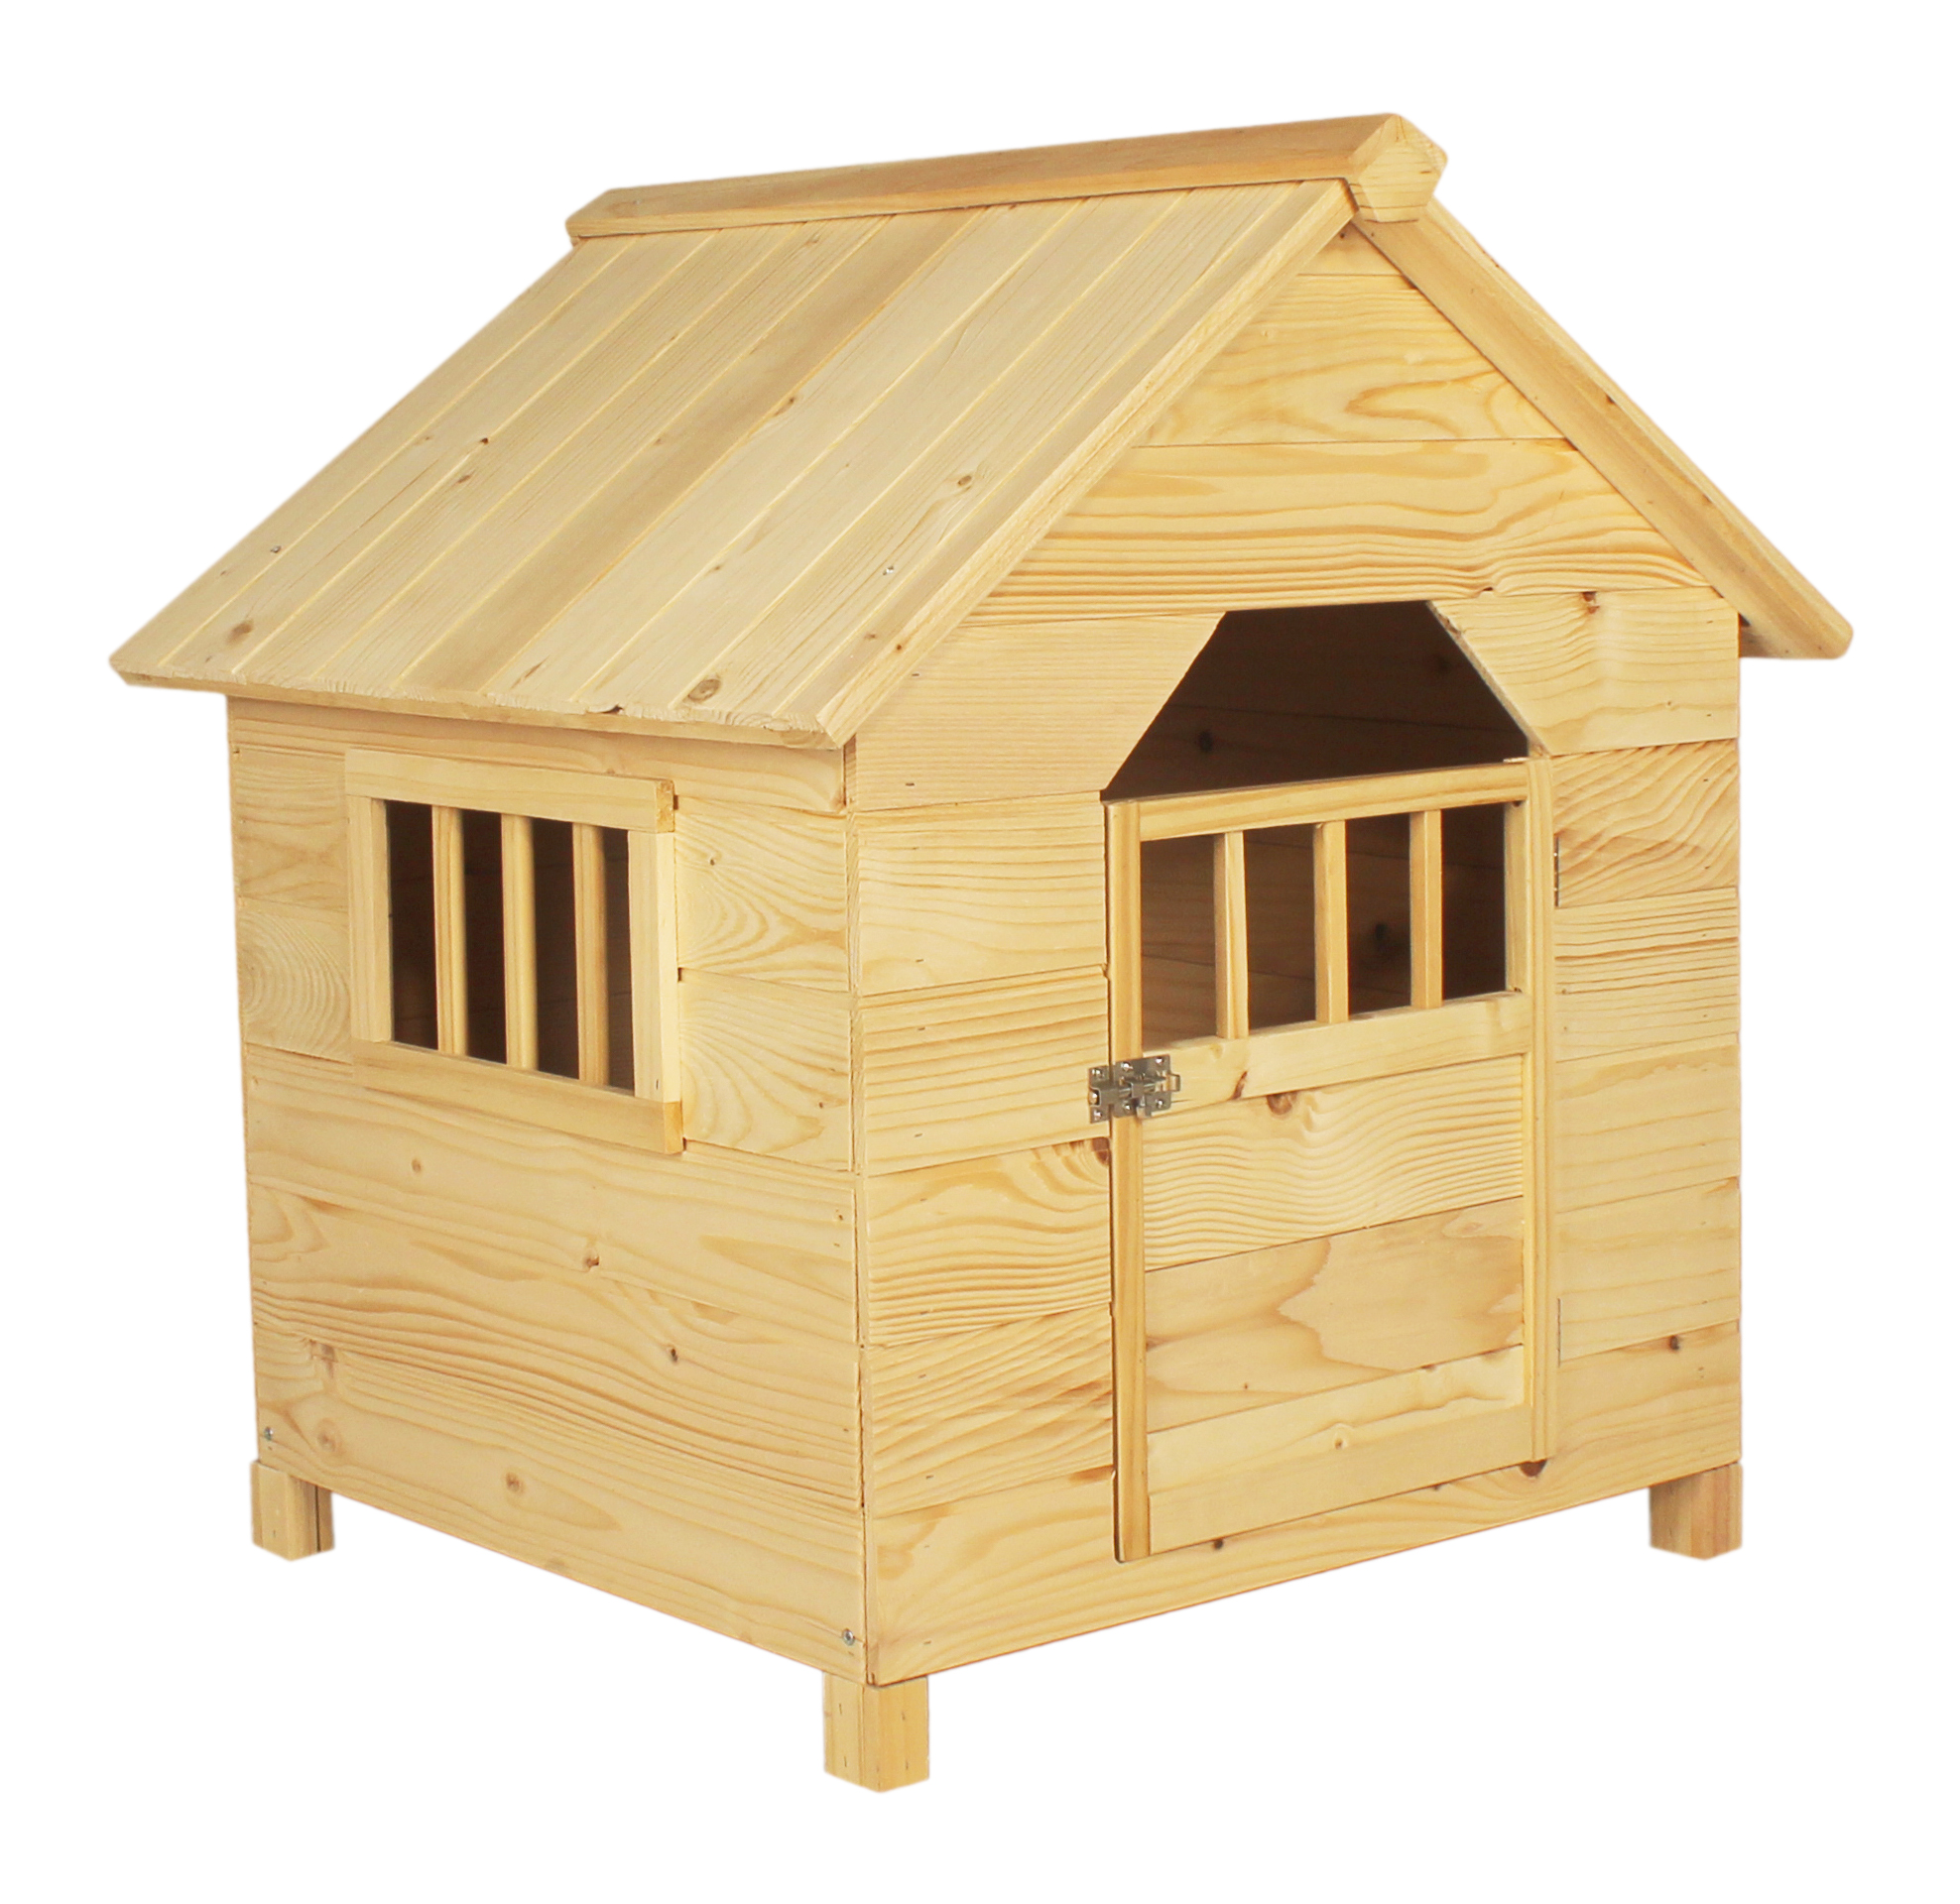 Solid Fir Wood Wooden Dog Kennel House Pet Shelter Bunny Rabbit